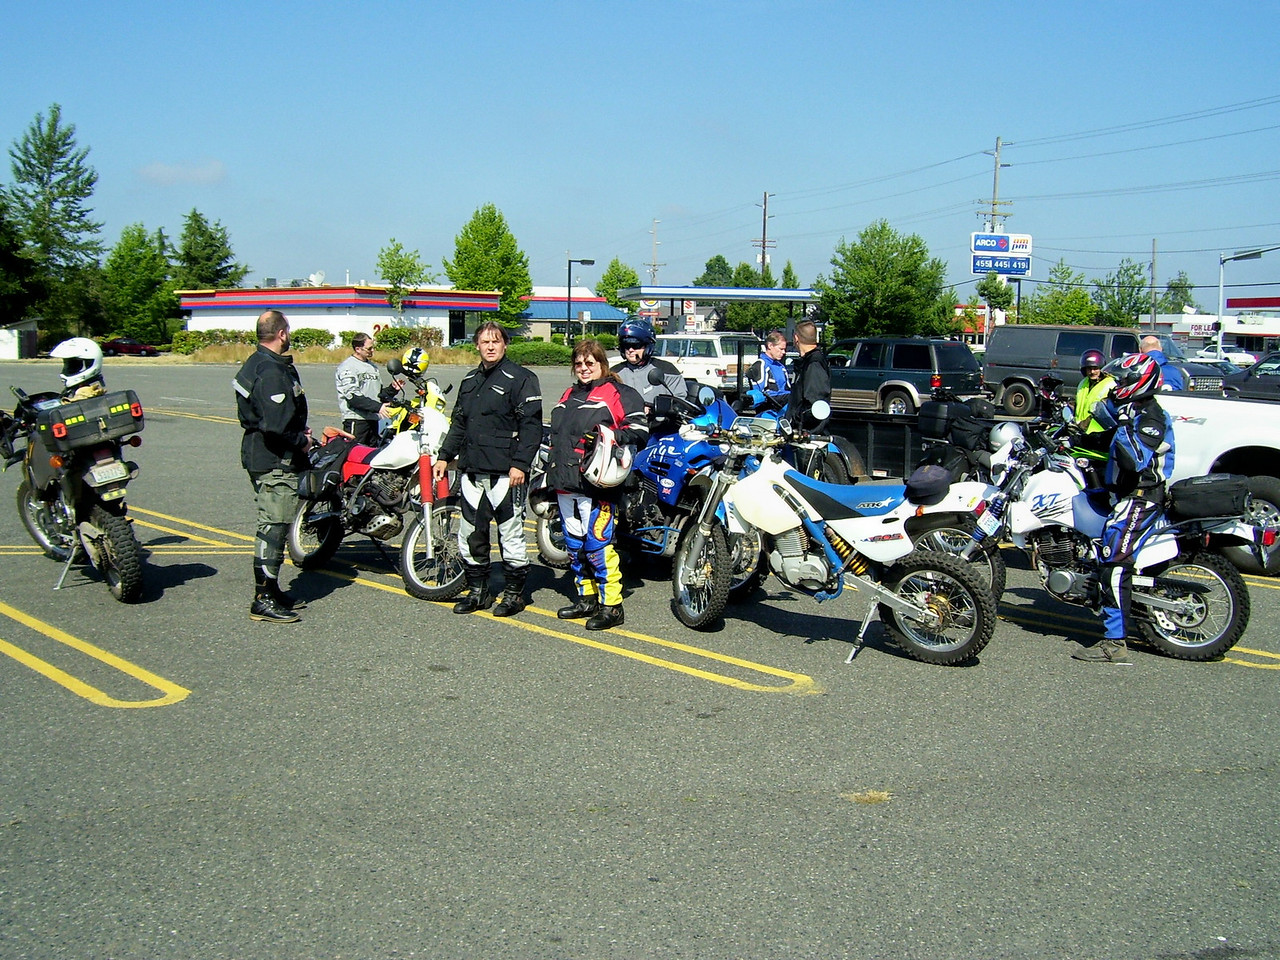 Our starting point Safeway Parking lot in Enumclaw.